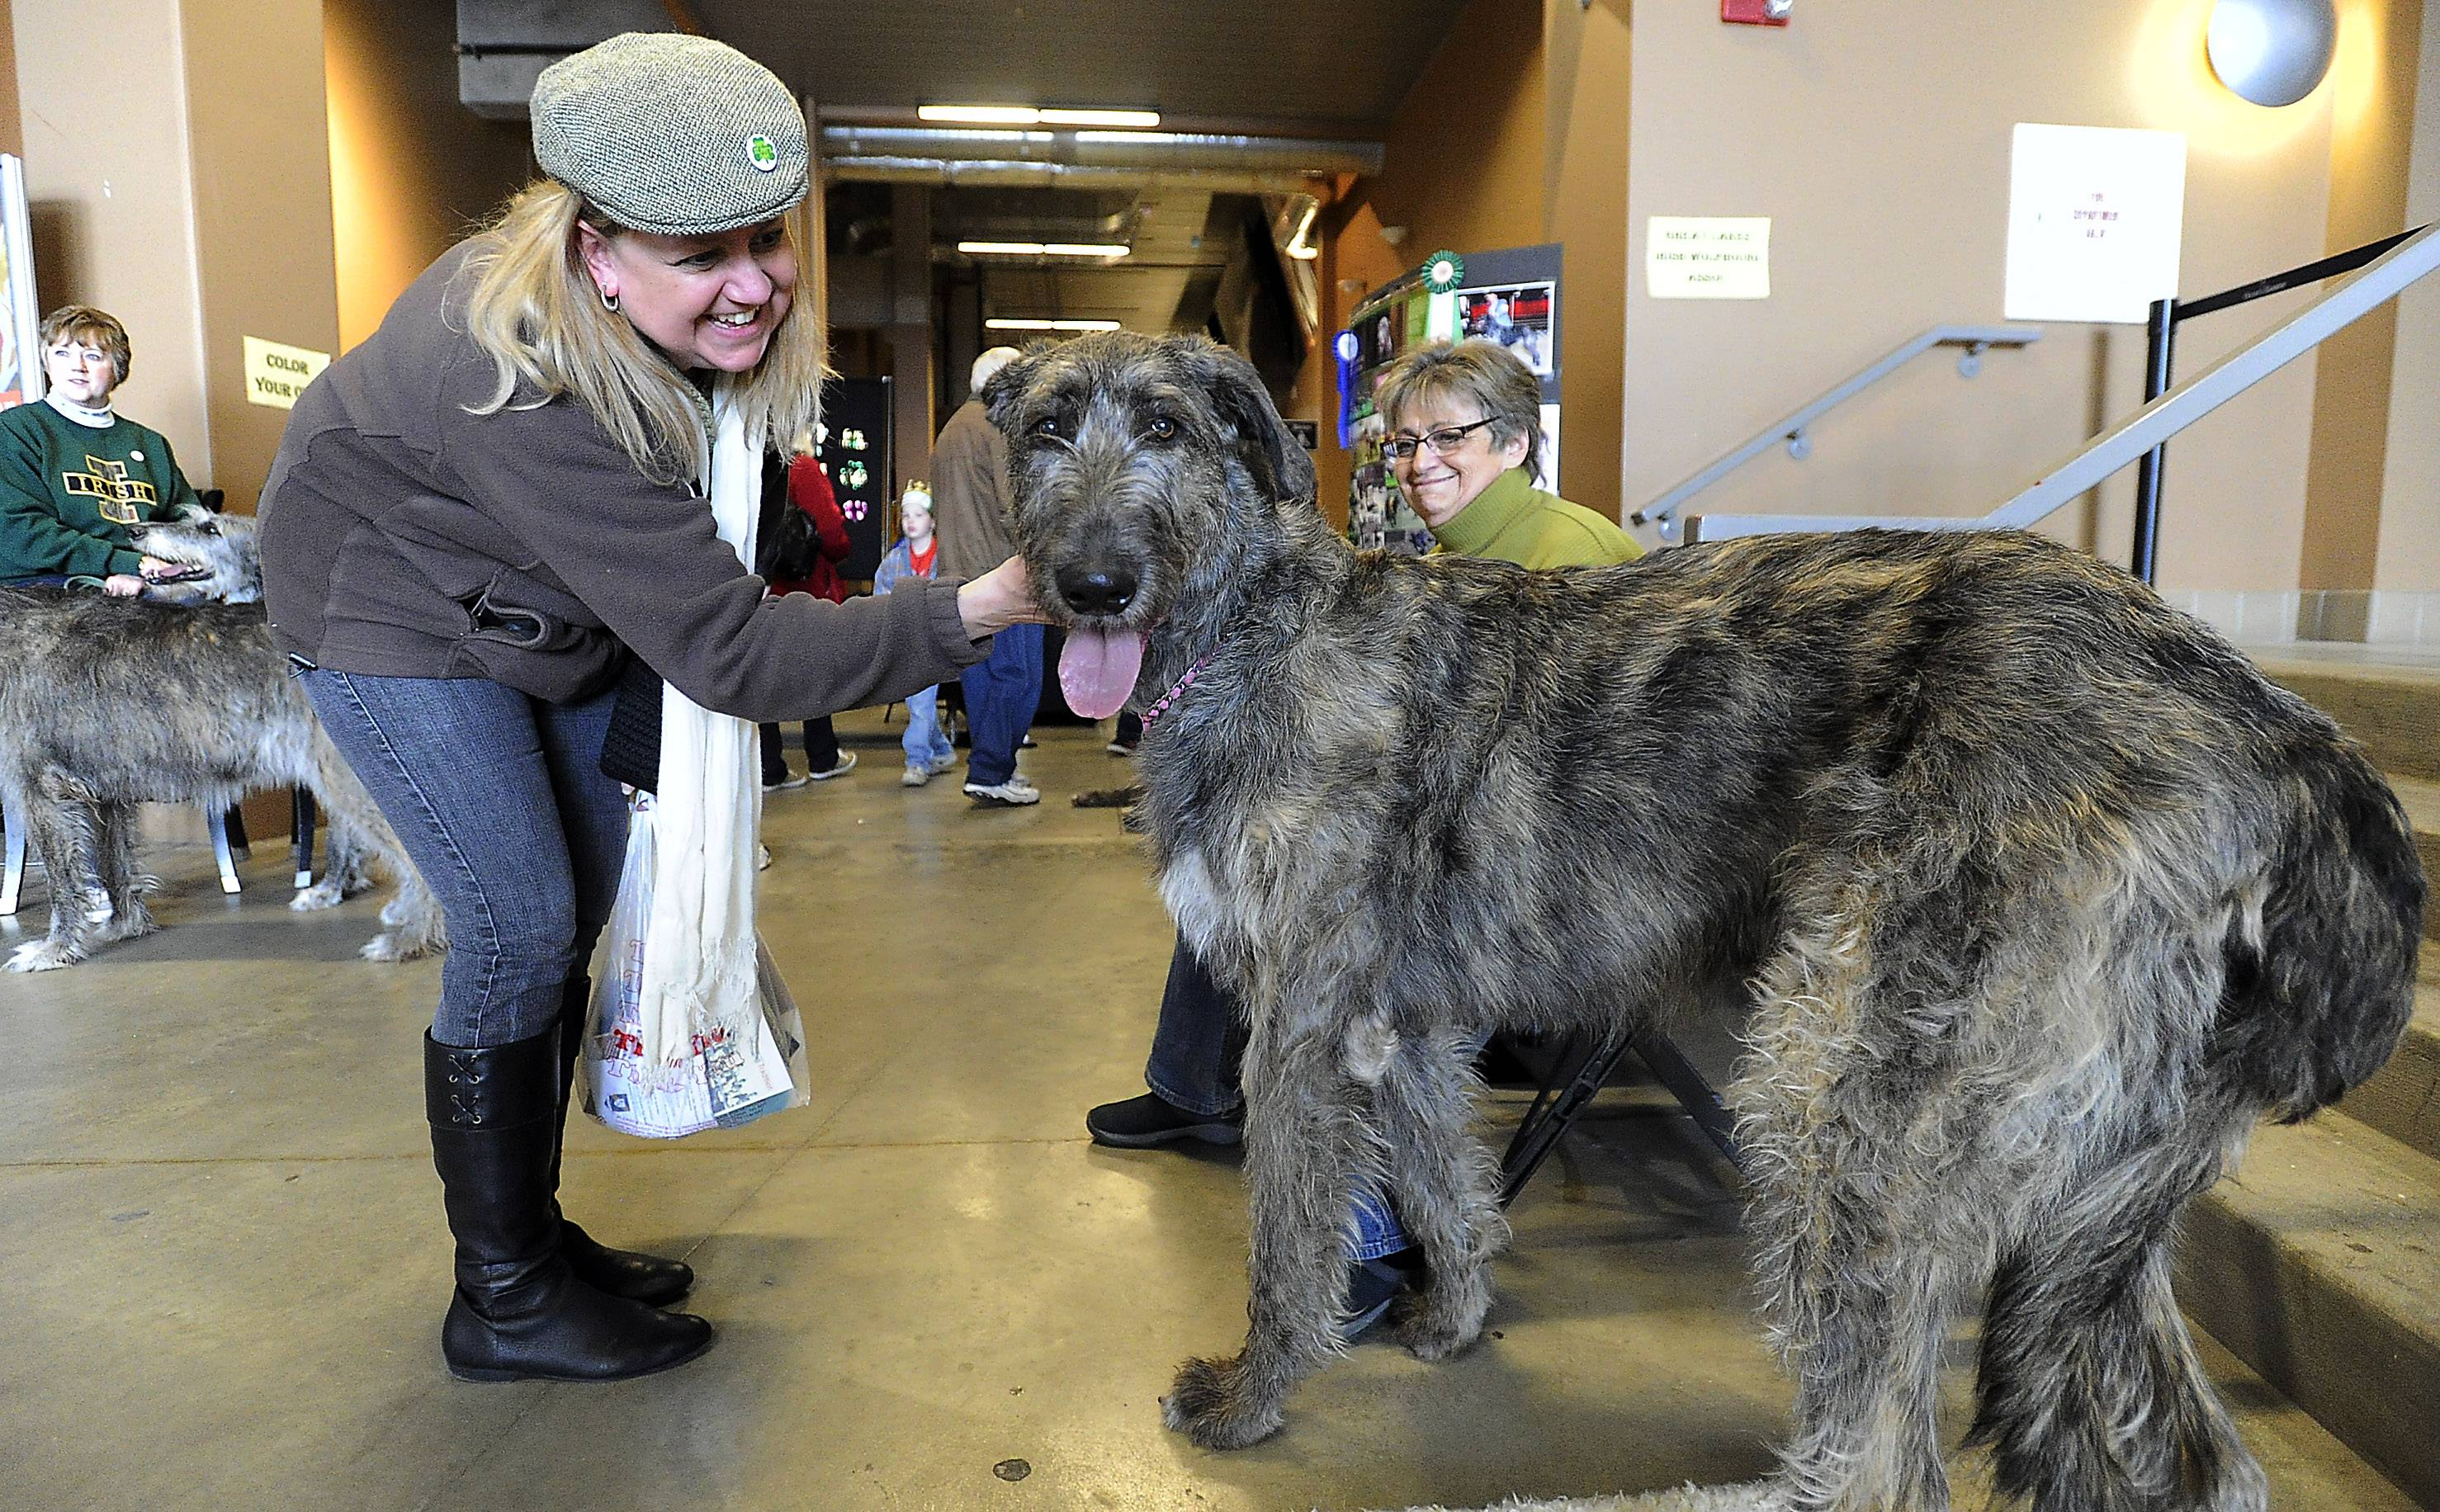 Suzy Finn, of Arlington Heights, pets Odetta the Irish Wolfhound, not quite a year old, at the third annual Northwest Celtic Fest at the Sears Centre on Saturday.